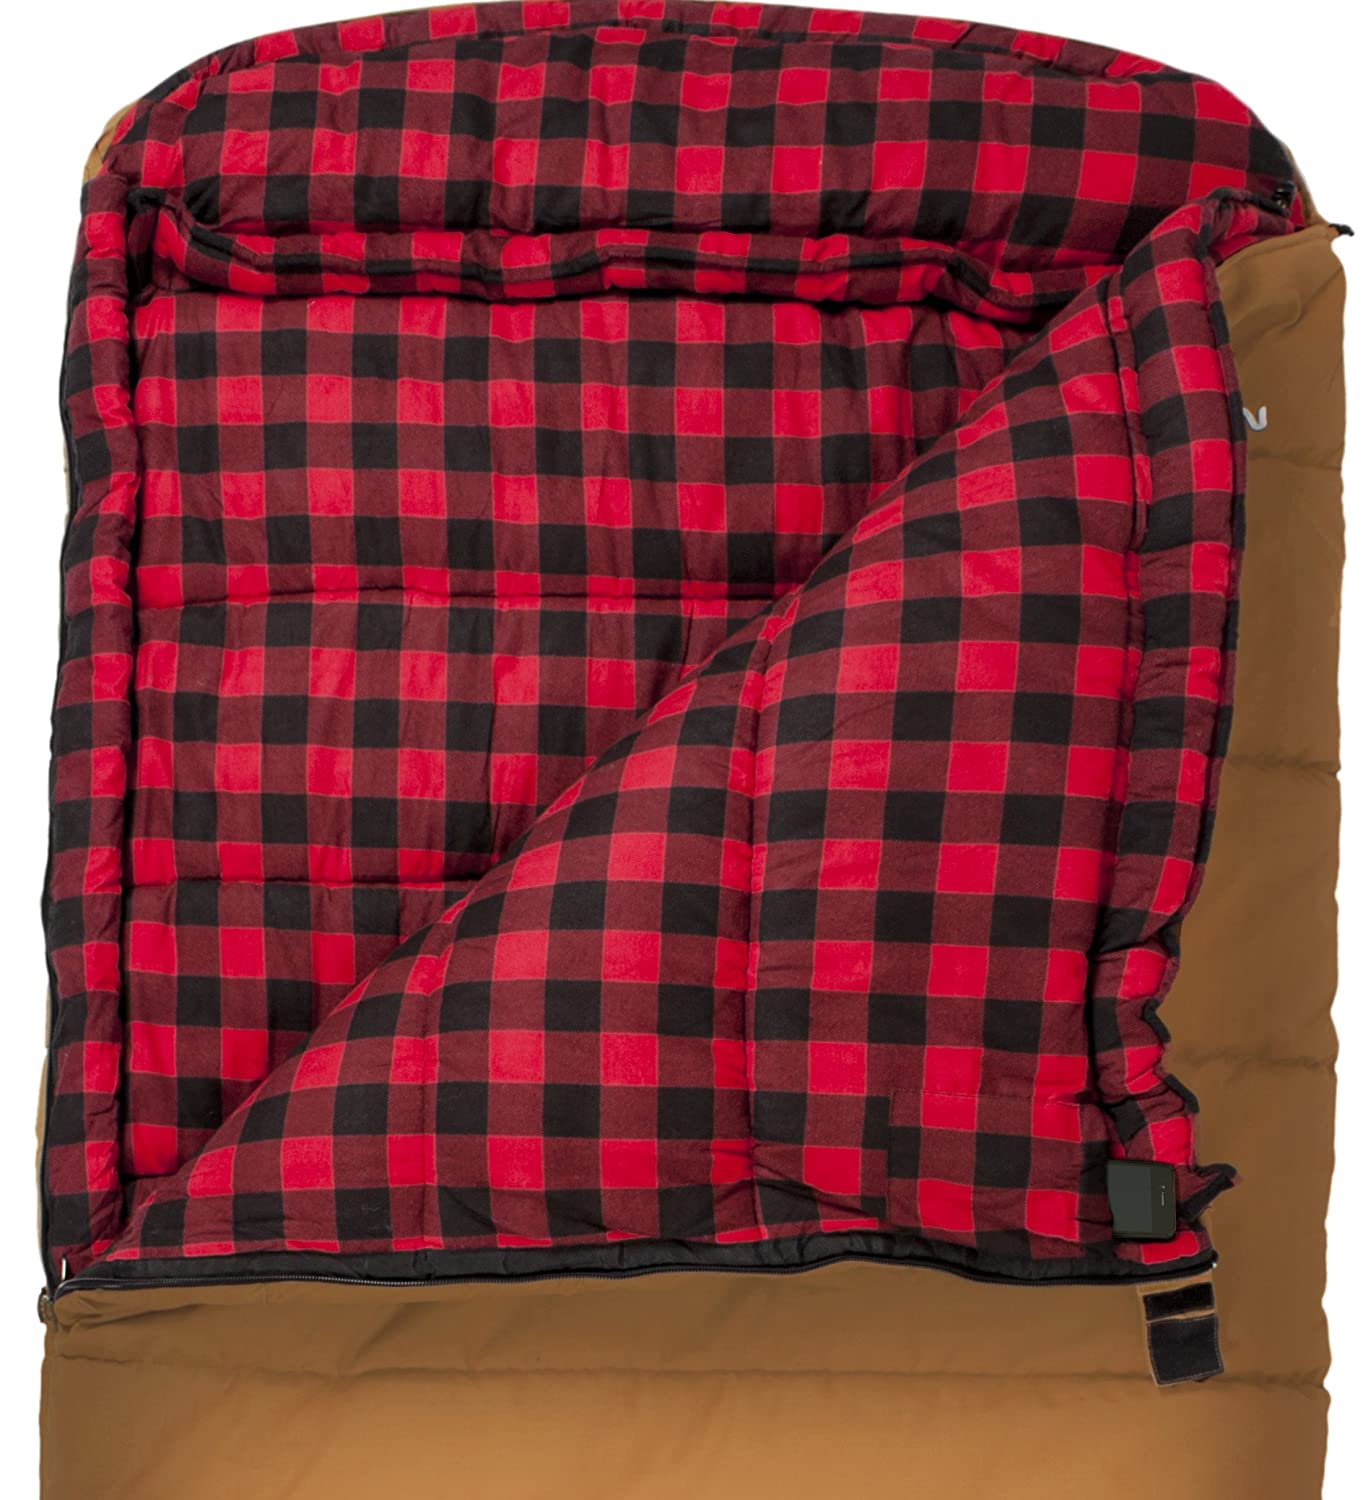 TETON Sports Deer Hunter Sleeping Bag Warm and Comfortable Sleeping Bag Great for Camping Even in Cold Seasons